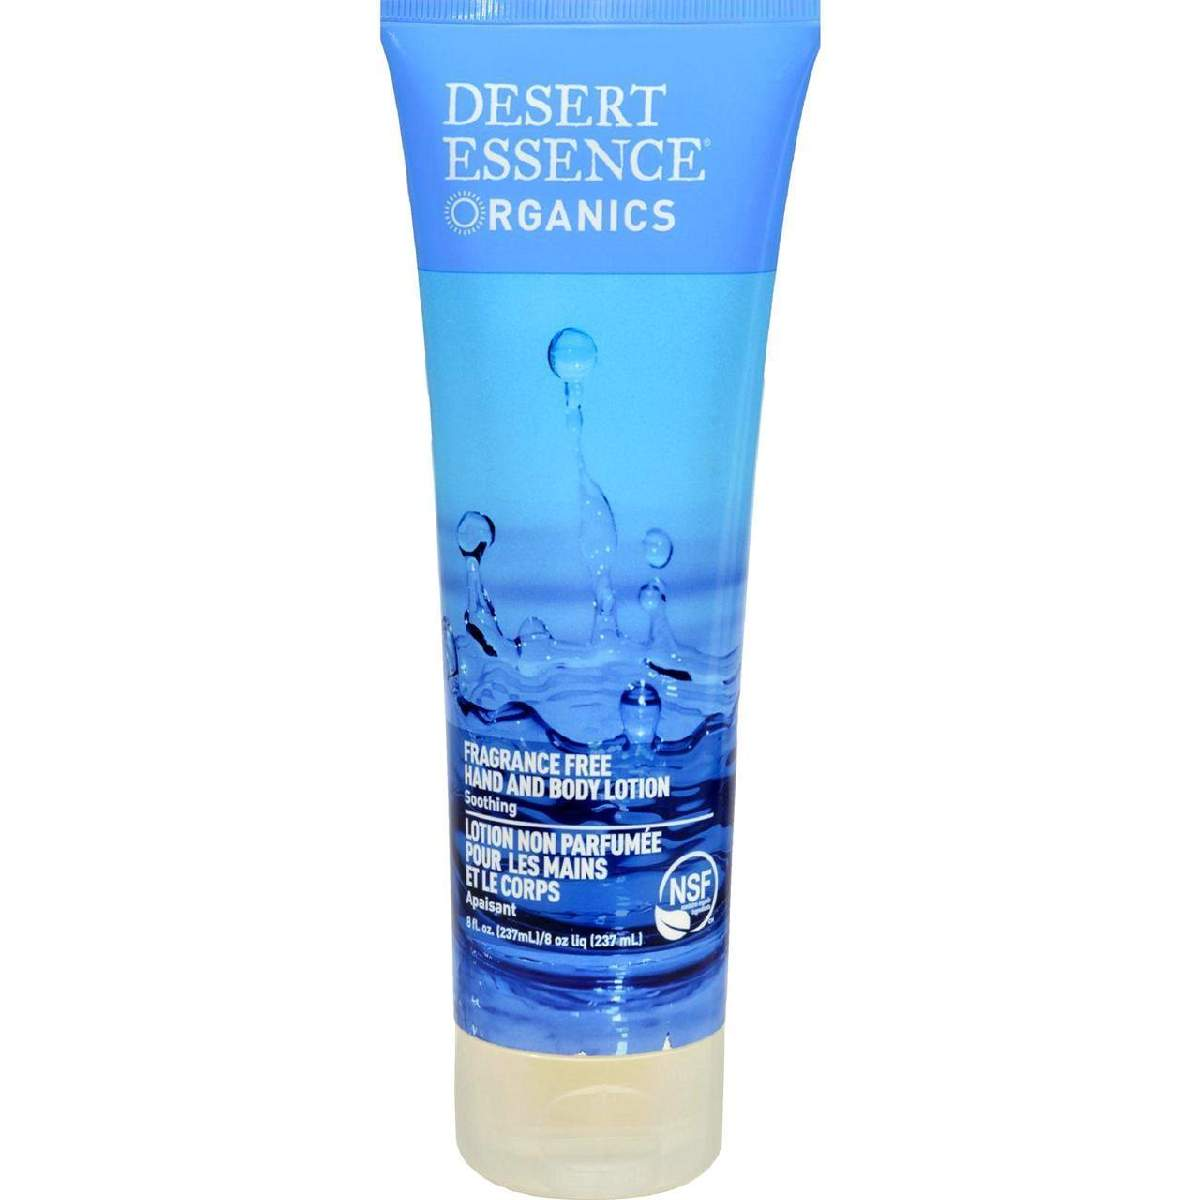 Desert Essence Pure Hand And Body Lotion Unscented - 8 Fl Oz